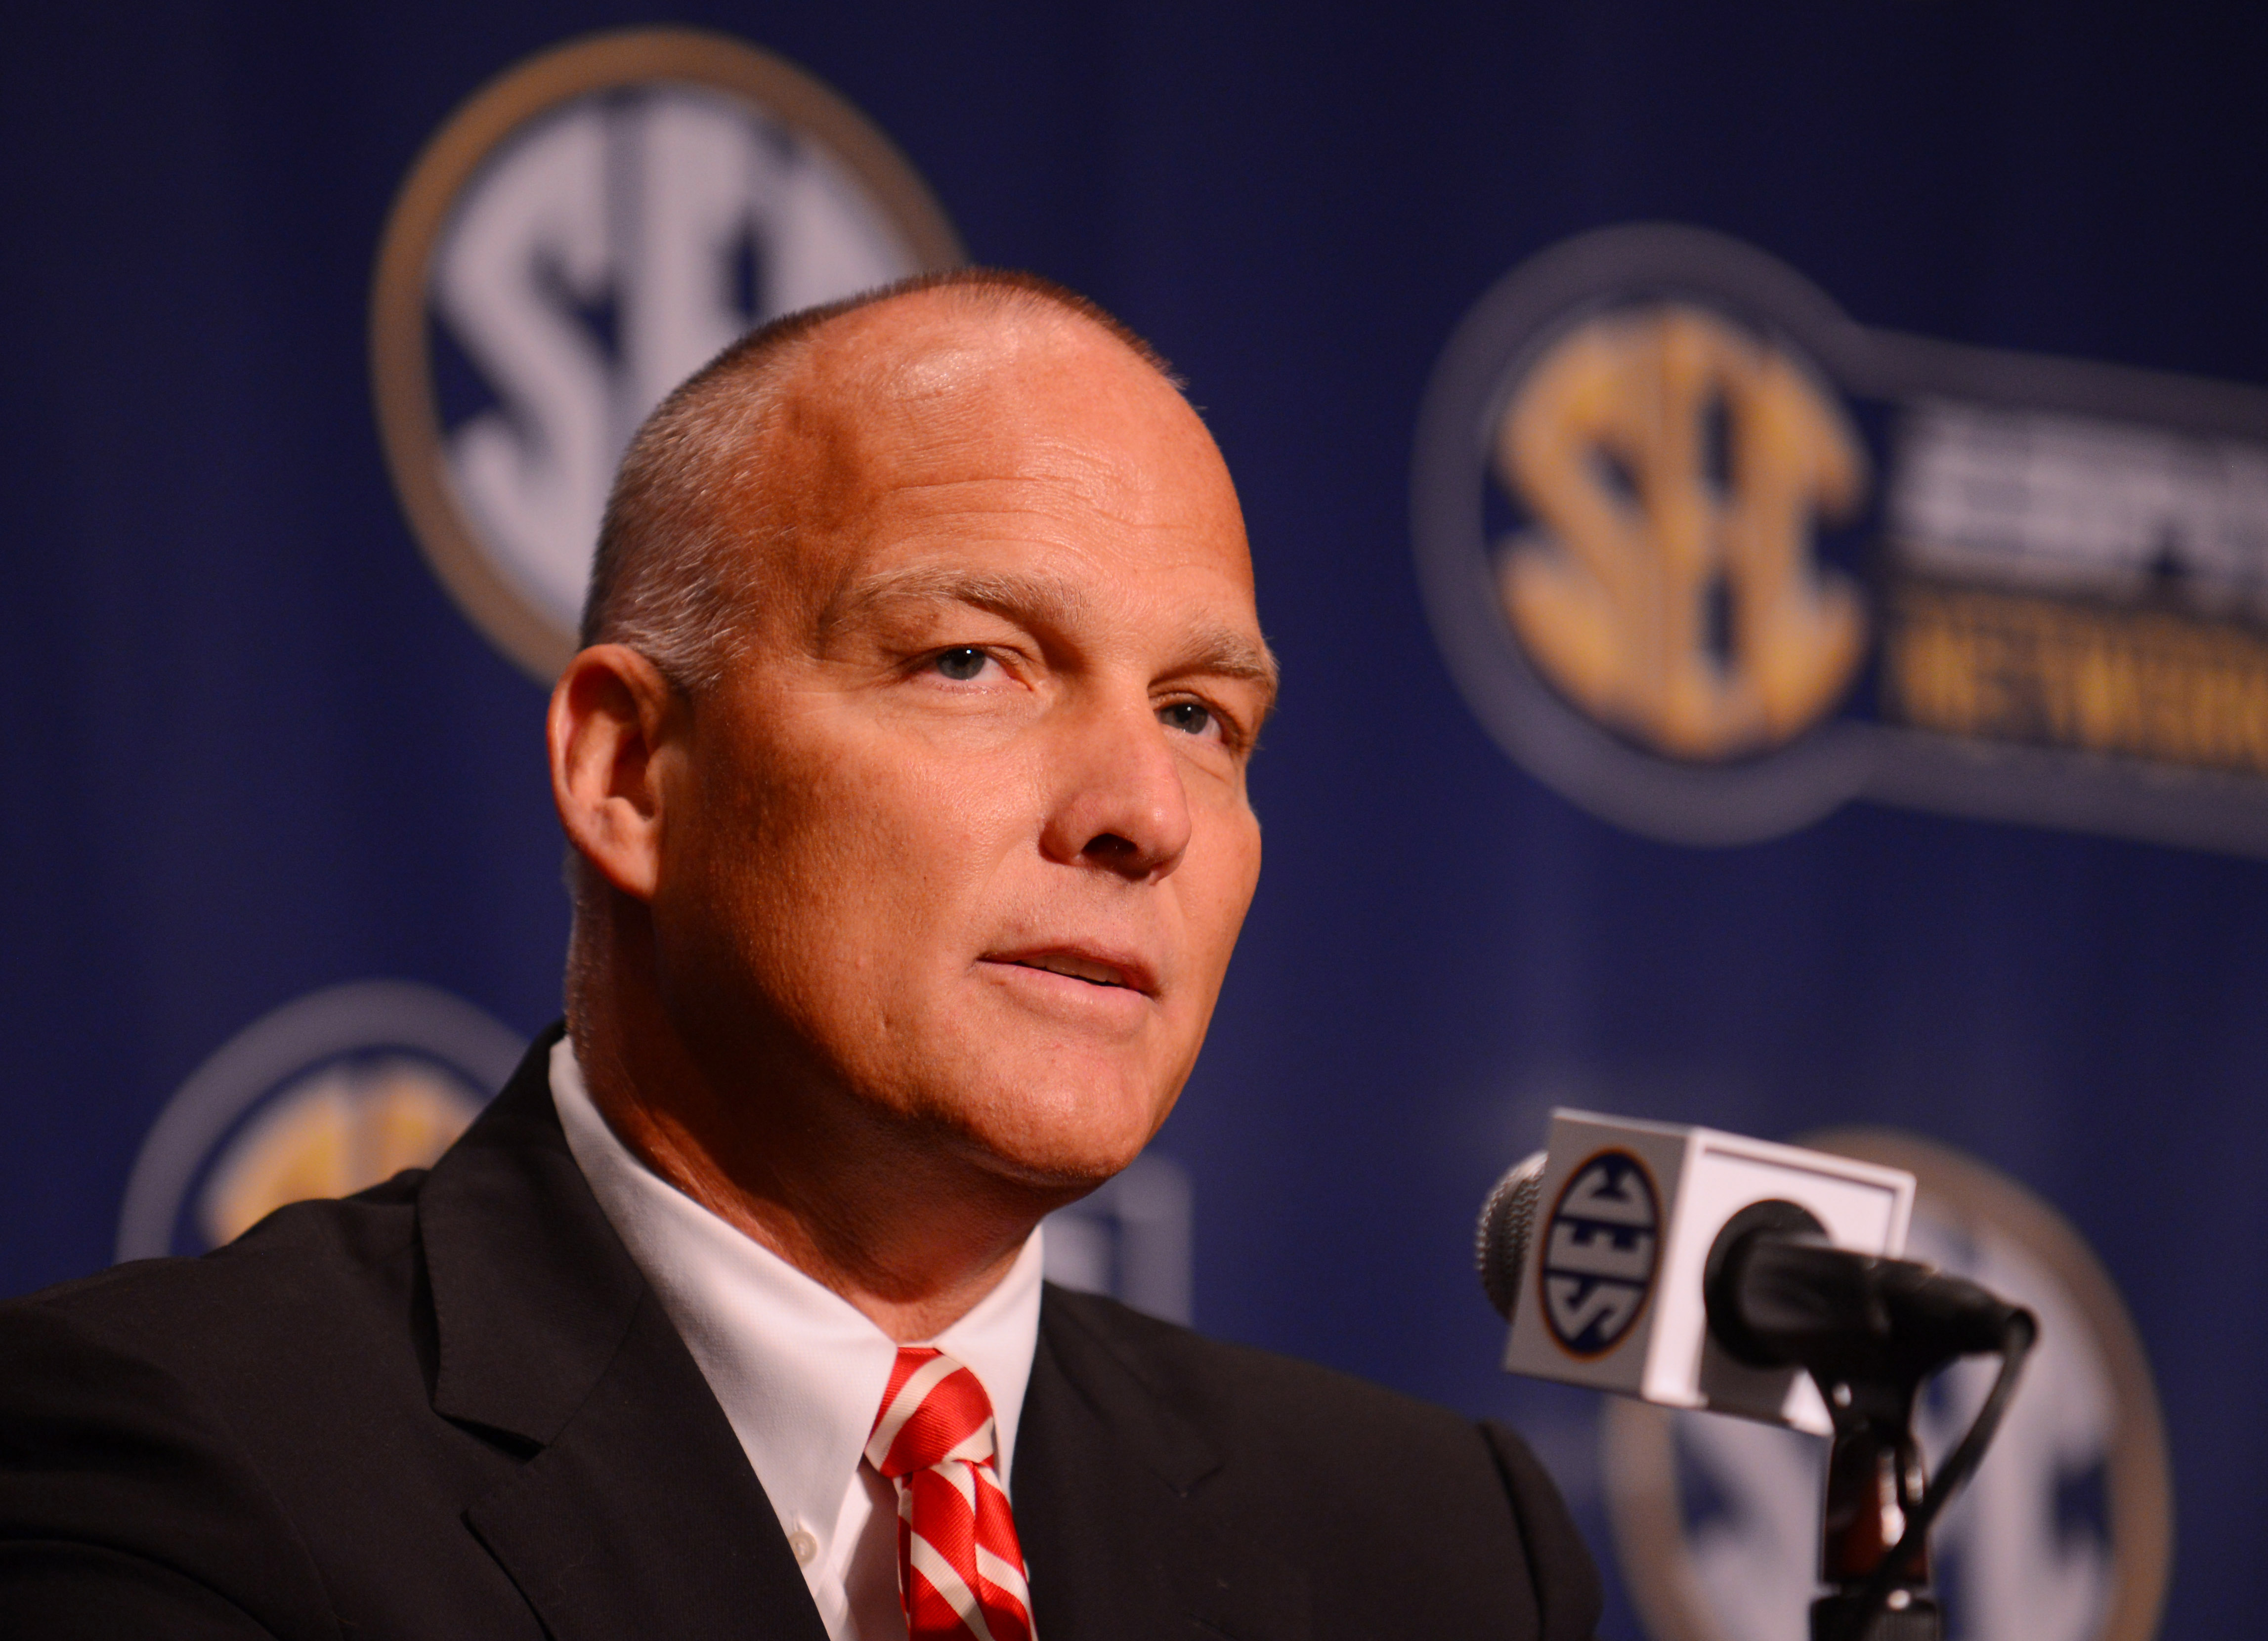 MARK RICHT'S DISAPPROVAL FACE